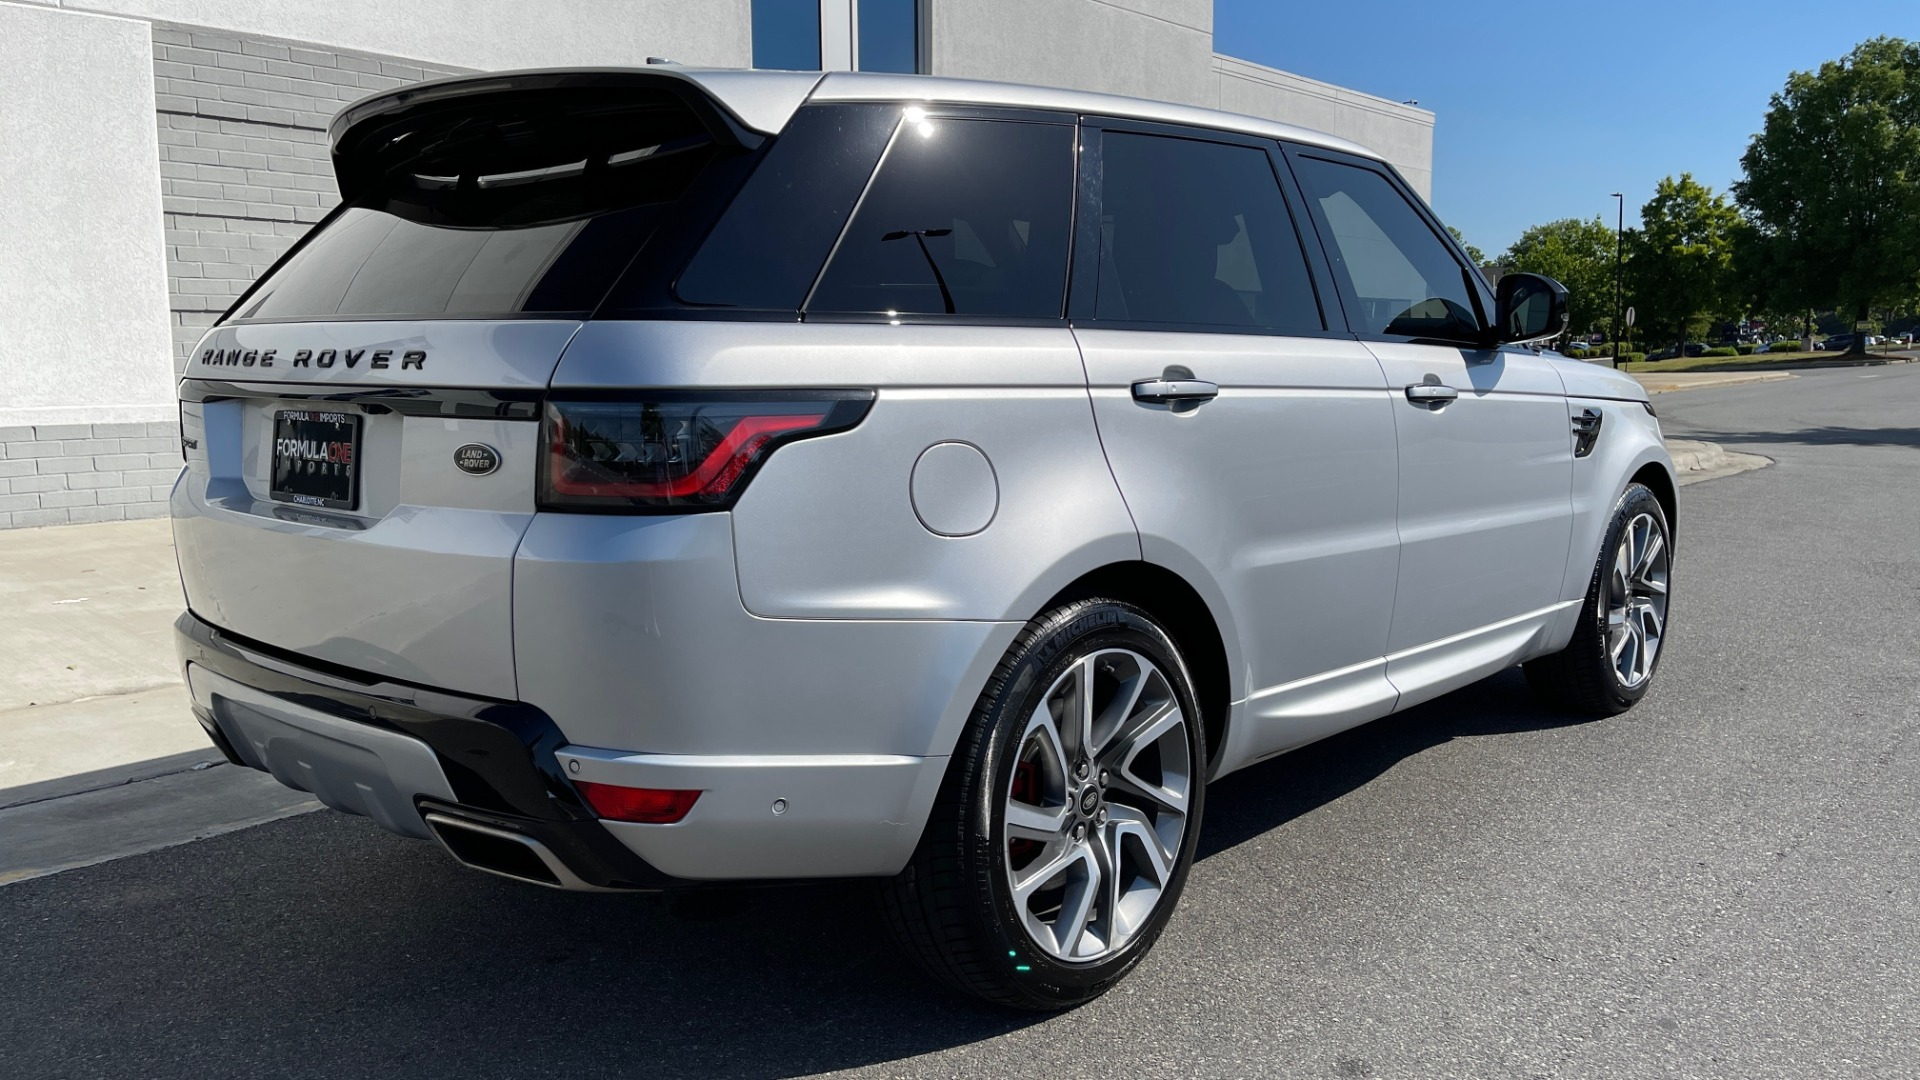 Used 2019 Land Rover RANGE ROVER SPORT HSE DYNAMIC / 3.0L SC V6 / 8-SPD / APPLE / NAV / SUNROOF / REARVIEW for sale Sold at Formula Imports in Charlotte NC 28227 6